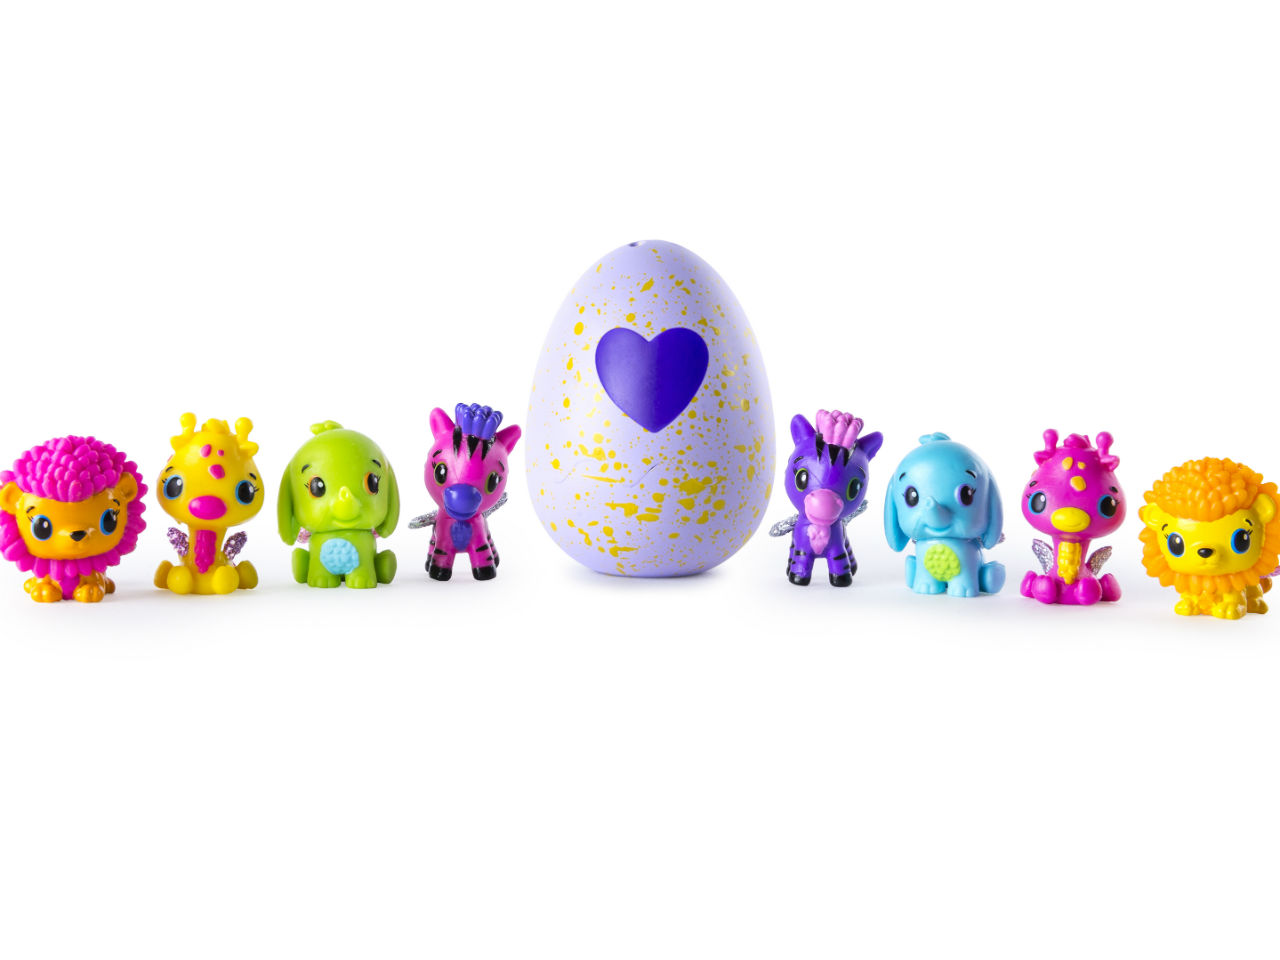 They're back! Check out the new Hatchimals CollEGGtibles here